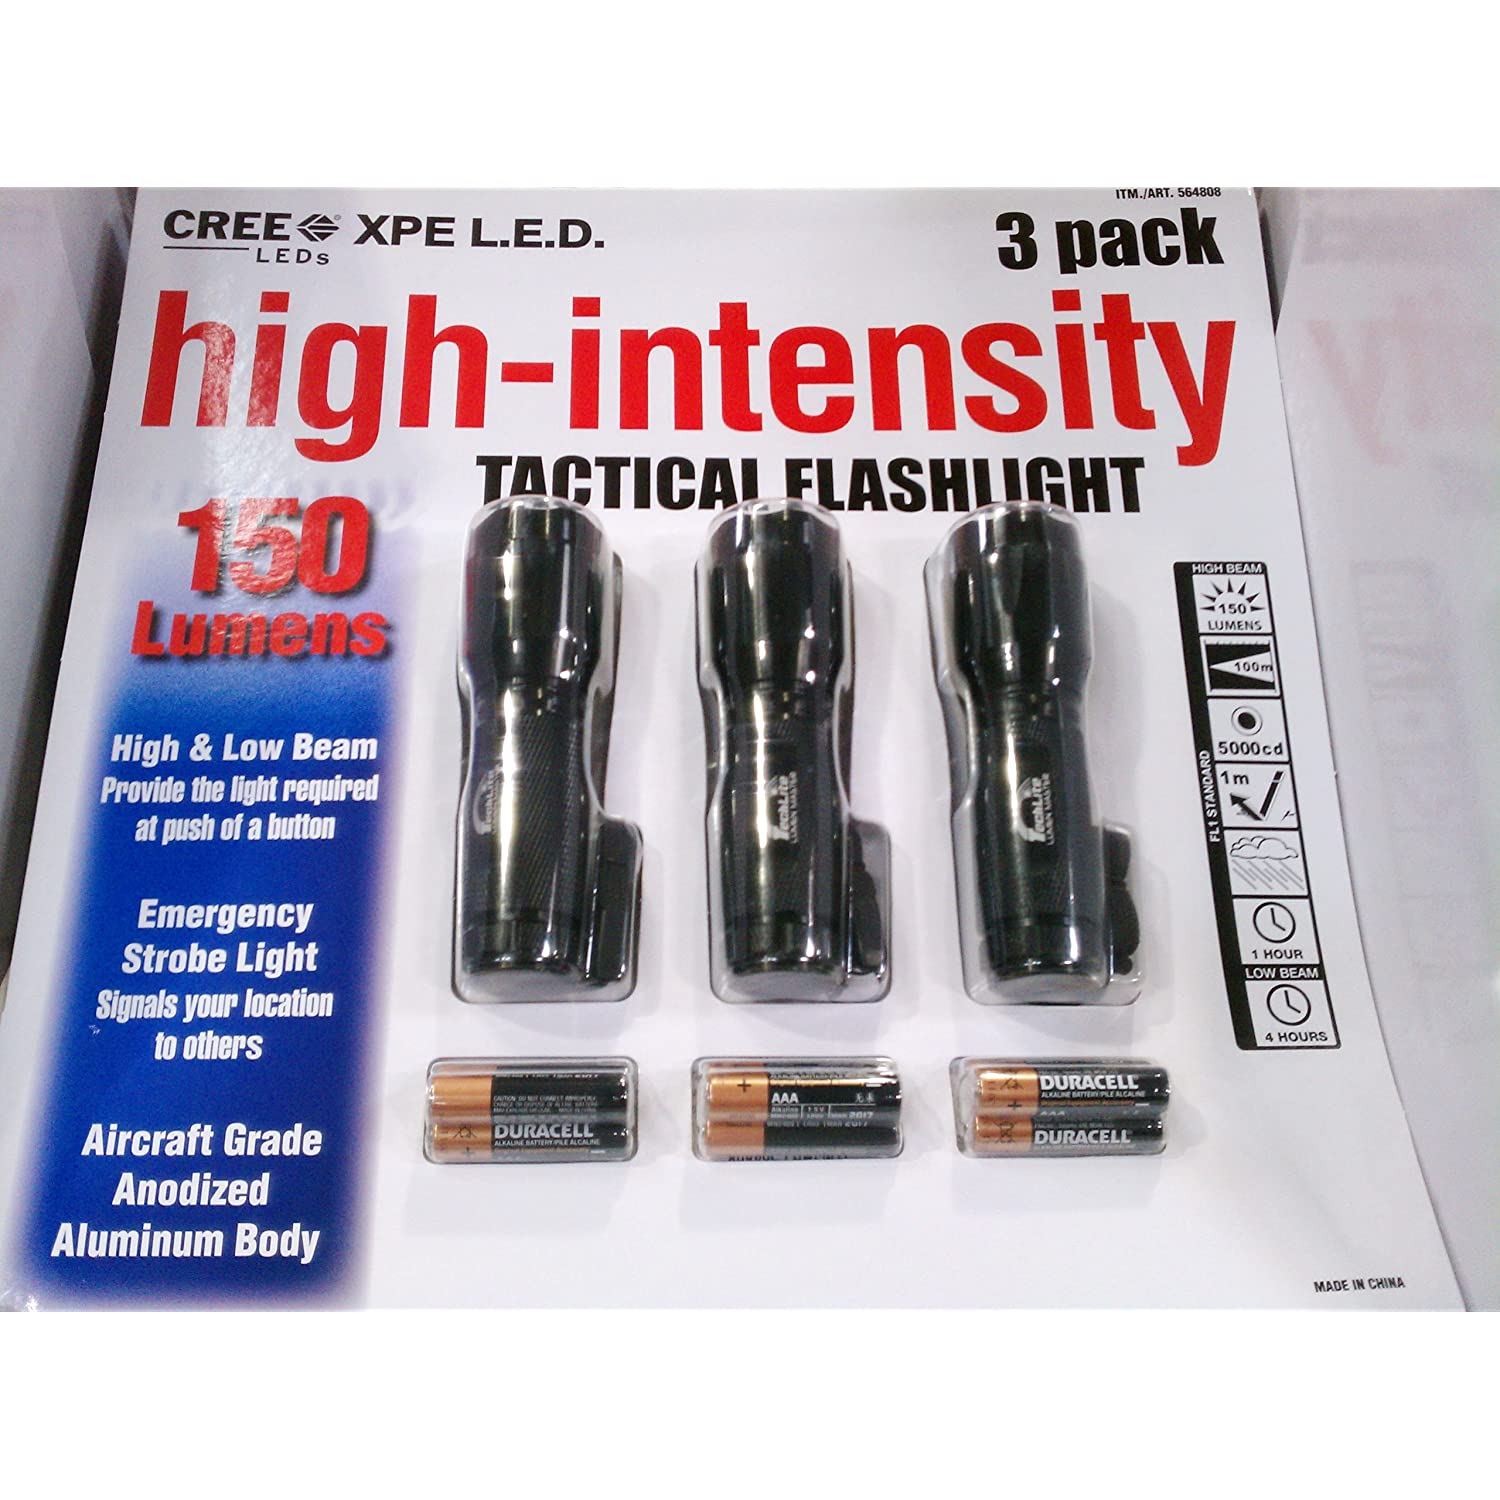 Techlite Lumen Master 150 Lumens High-Intensity CREE XPE L.E.D. Tactical Flashlight 3 pack Reviews